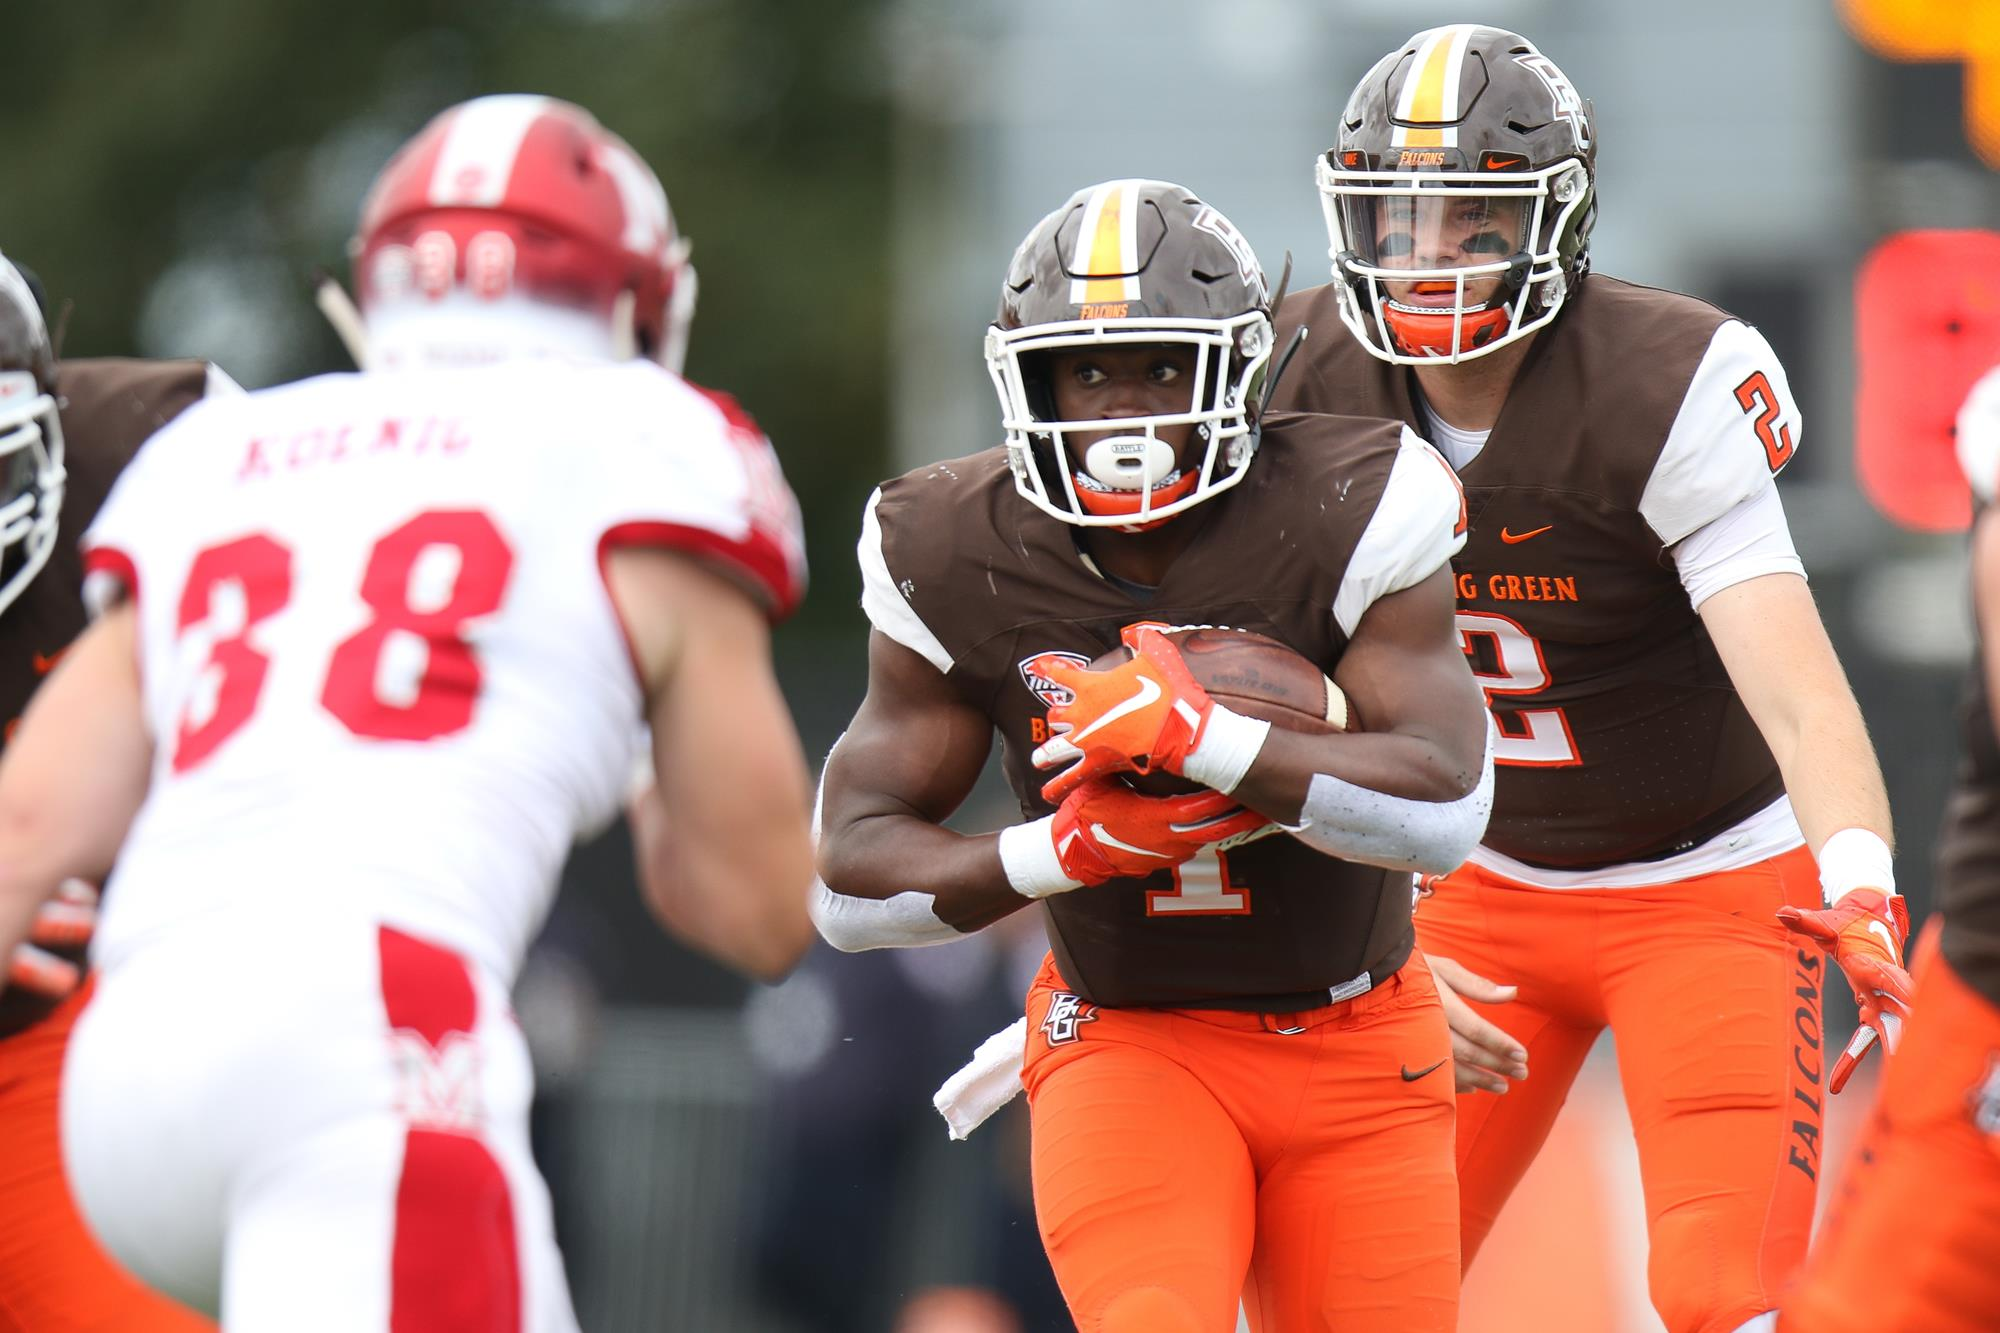 another chance e3f0e 6d109 2019 NCAA Division I College Football Team Previews: Bowling ...